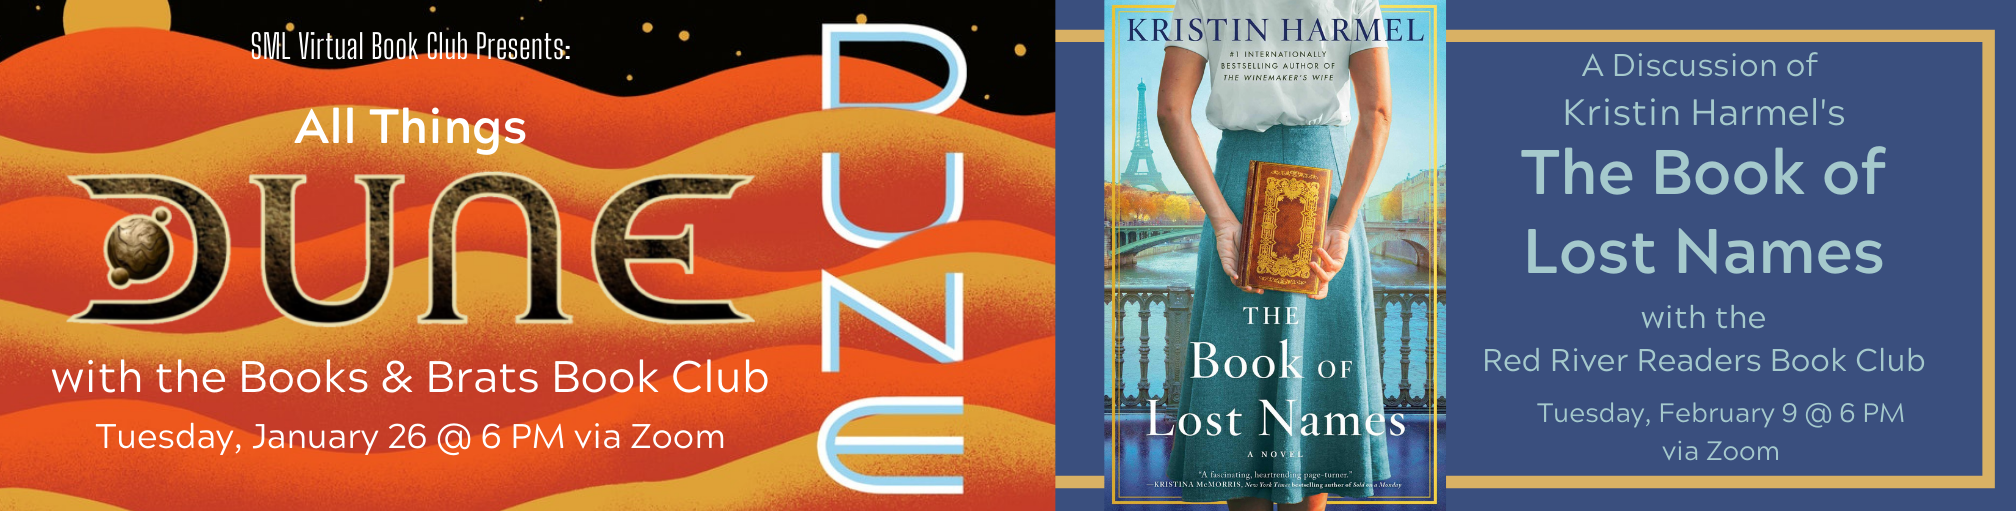 SML Virtual Book Club Discusses All Things Dune & The Book of Lost Names